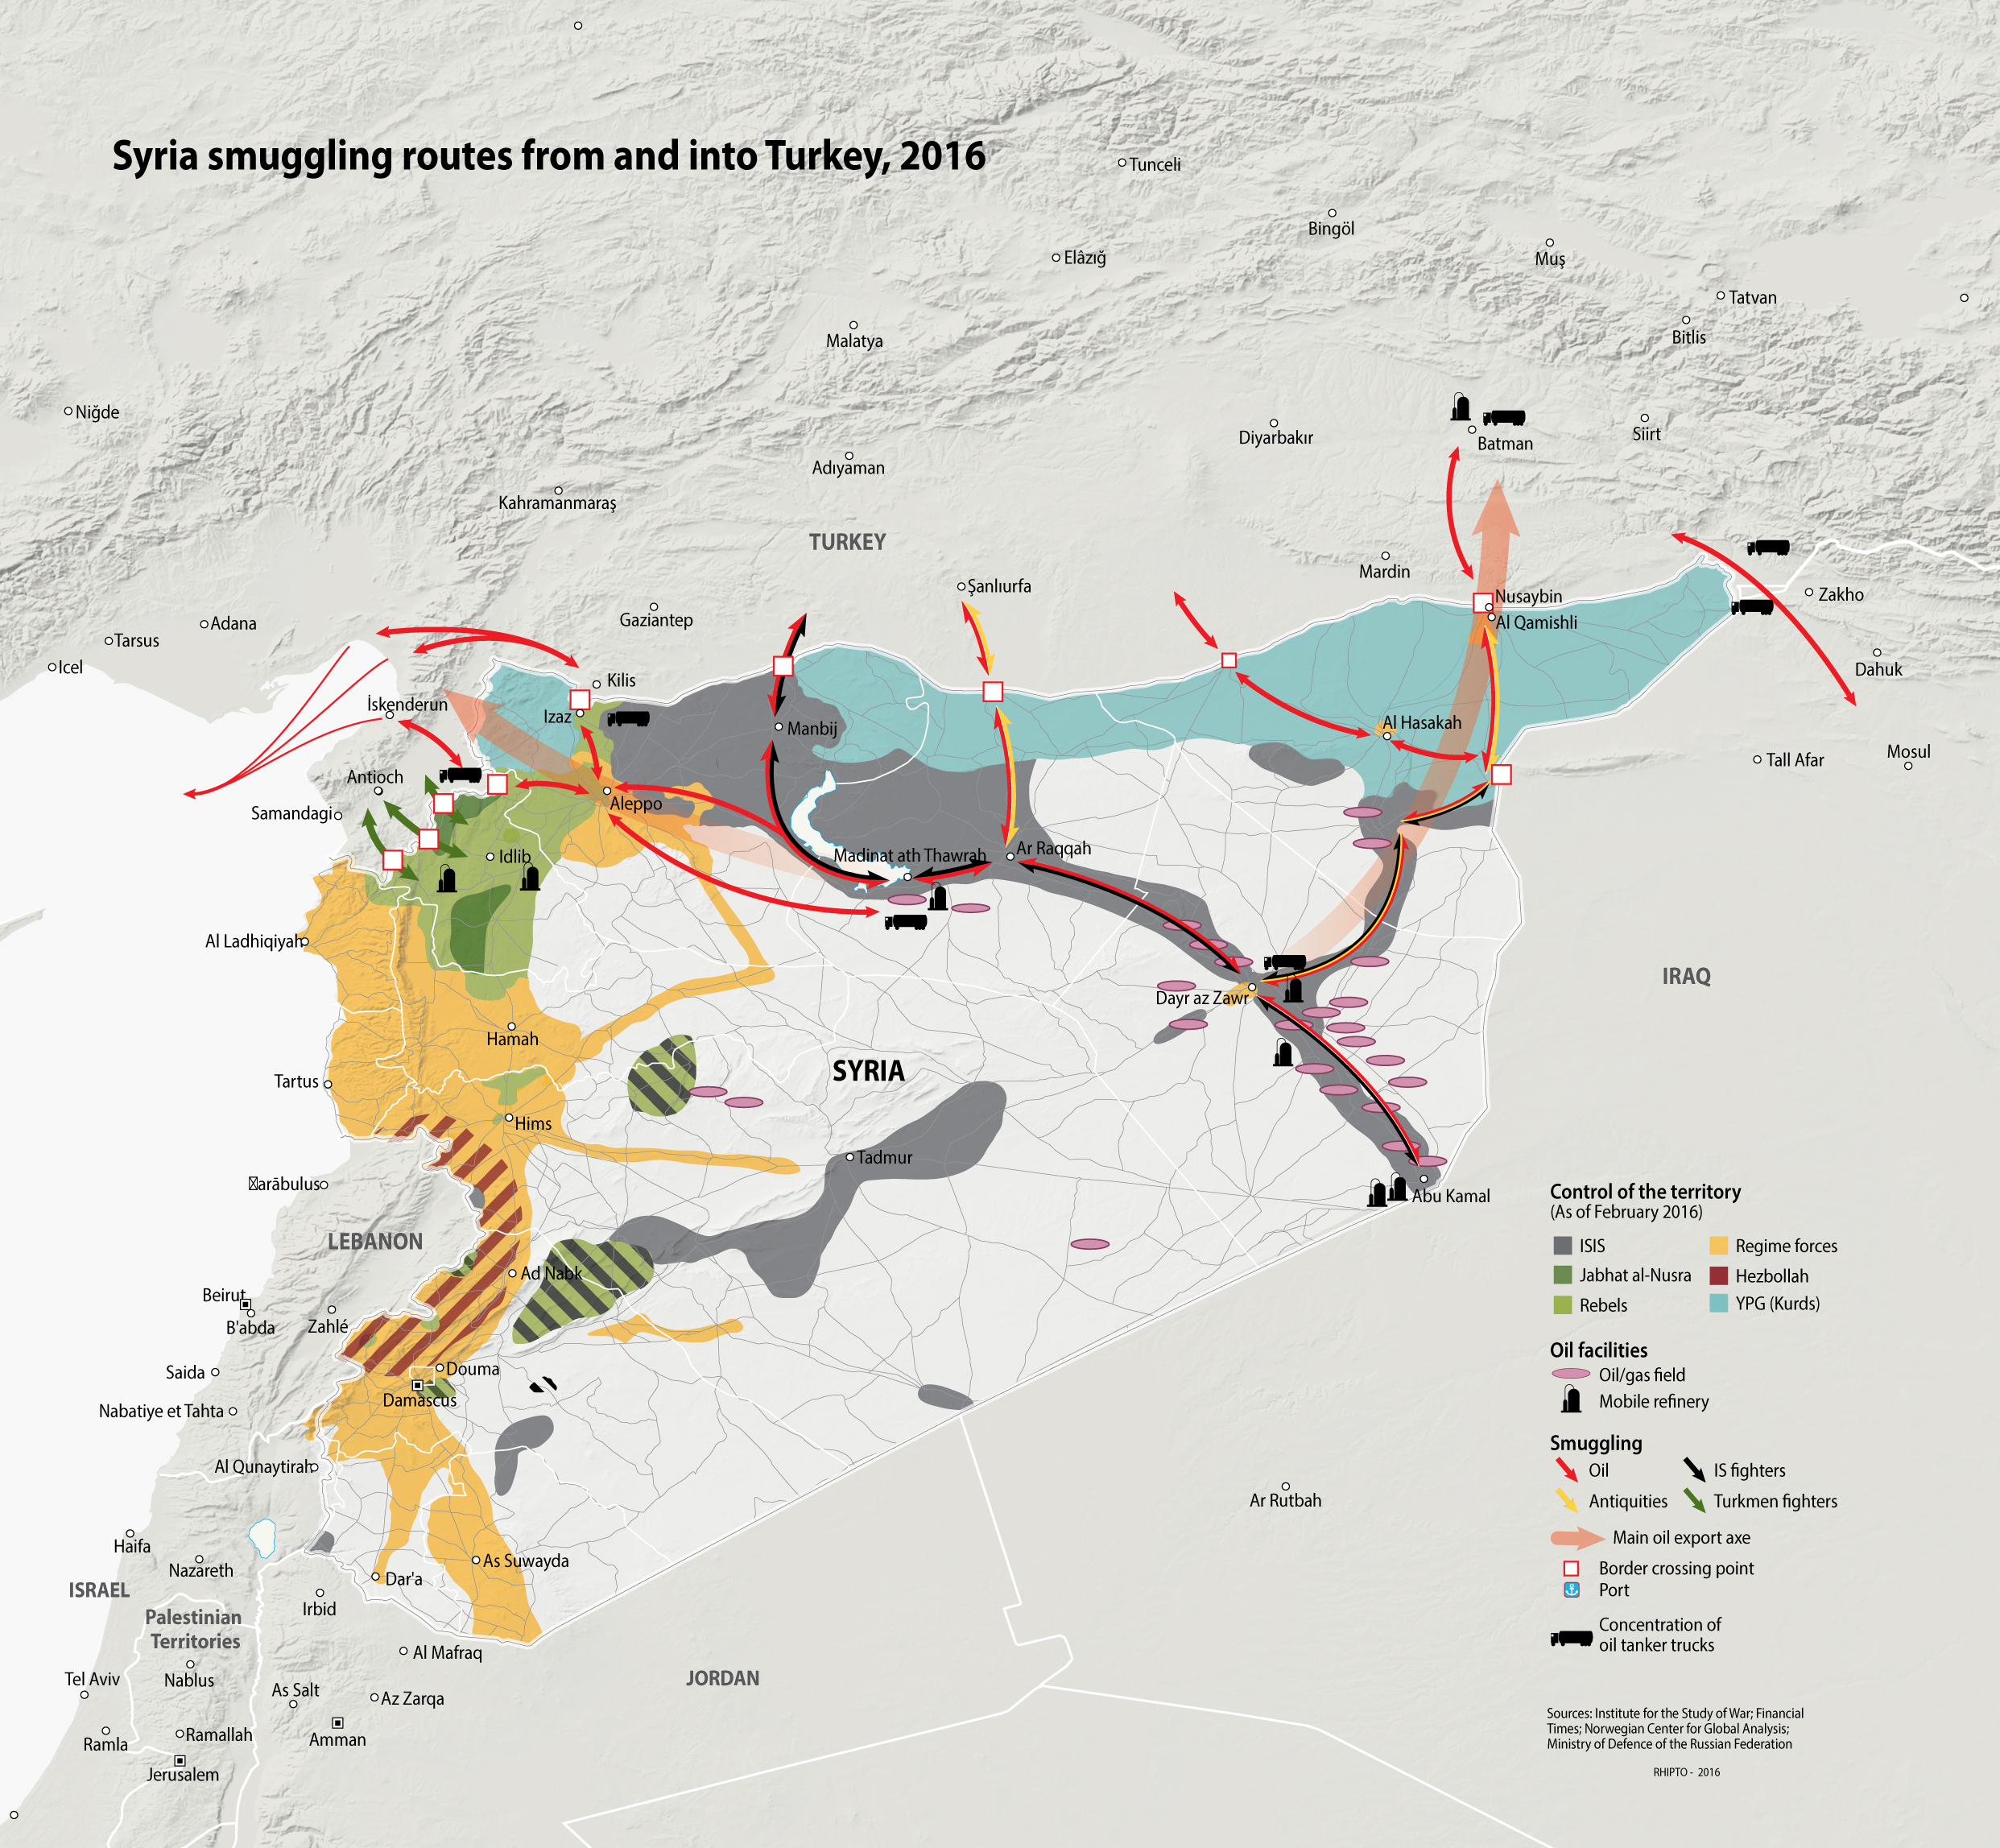 Syria smuggling routes